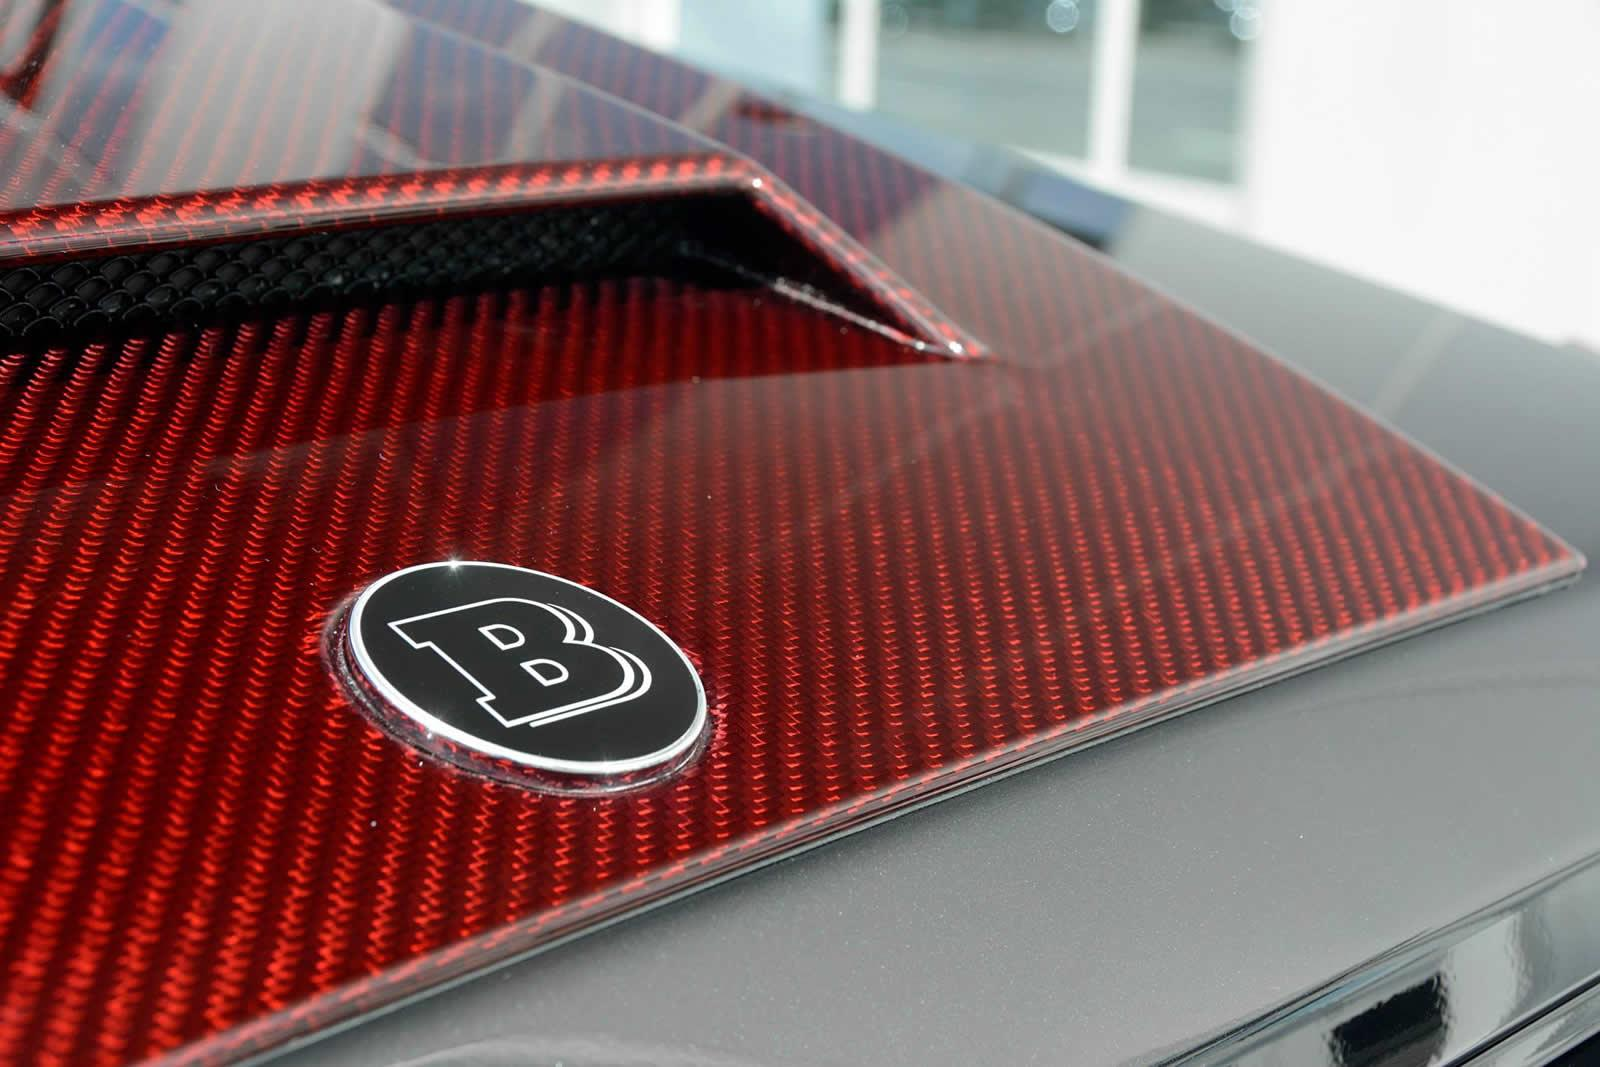 Brabus Mercedes Benz G63 Amg 6x6 Now Sports Red Carbon